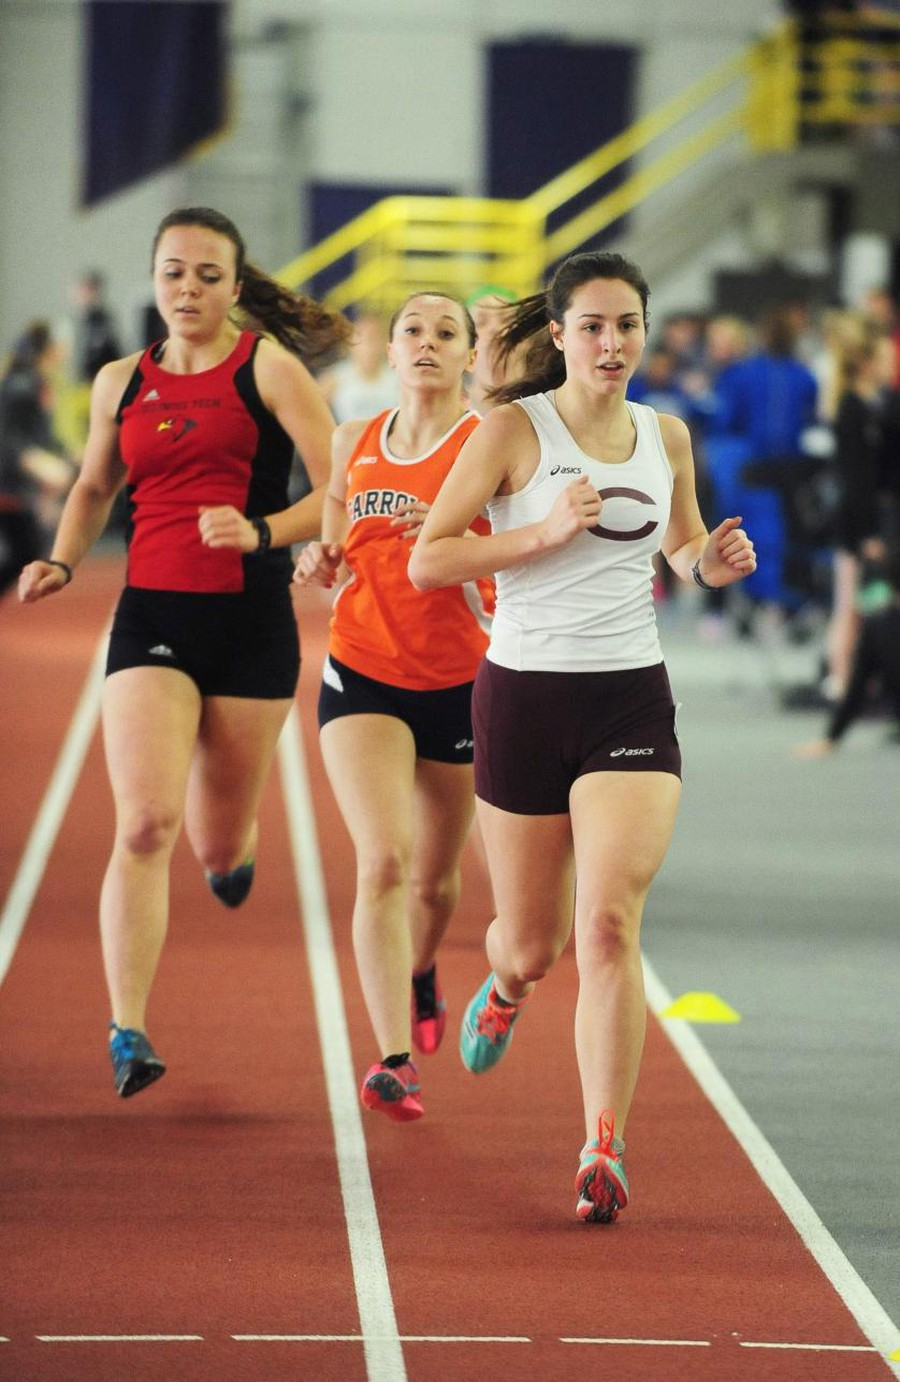 Third-year Madison Hetzner competes in the Windy City Invitational during the 2015 season.